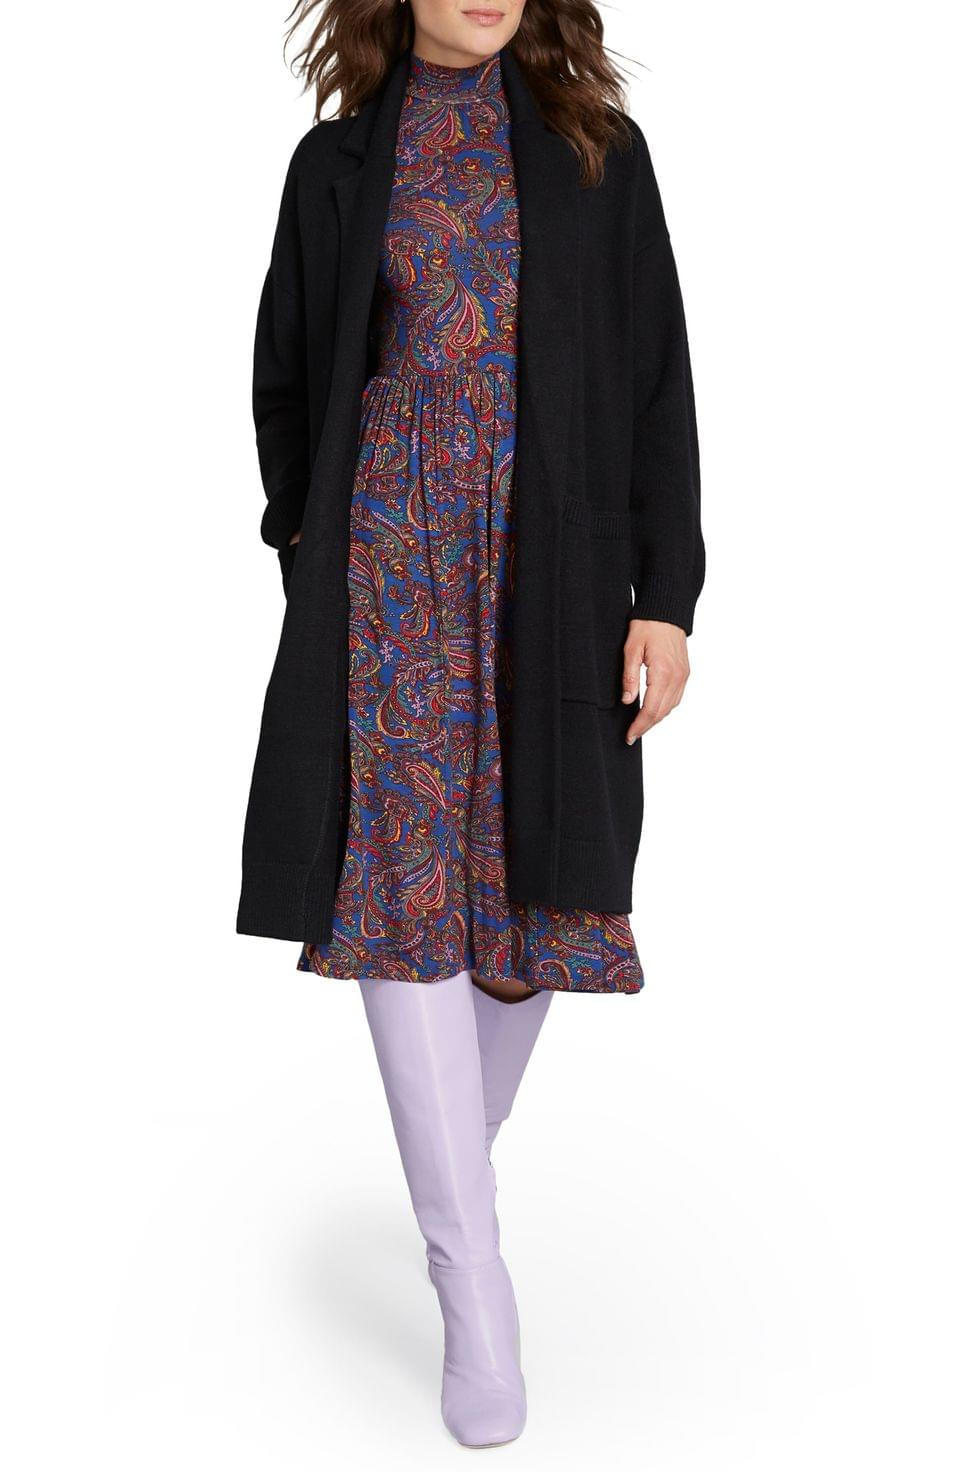 Women's ModCloth Open Front Sweater Coat (Regular & Plus Size)